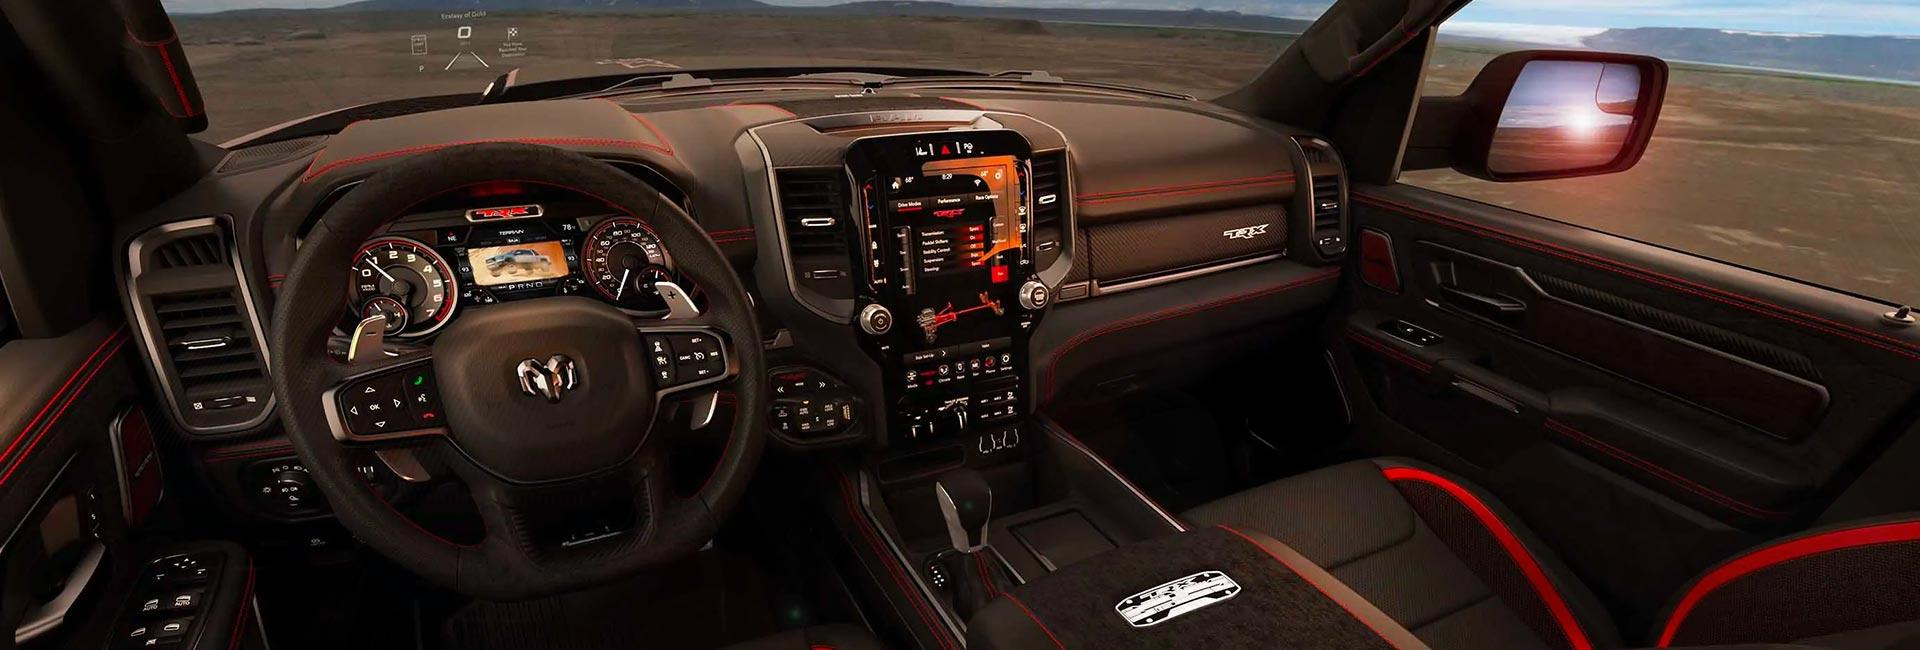 Interior view of the 2021 RAM TRX